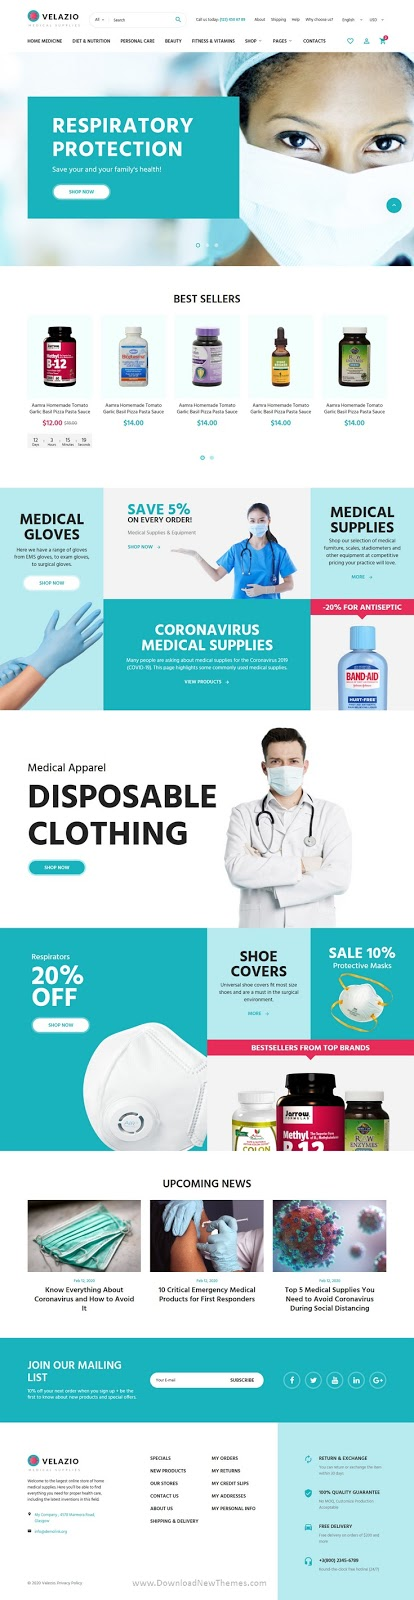 Medical Supplies Shop HTML template